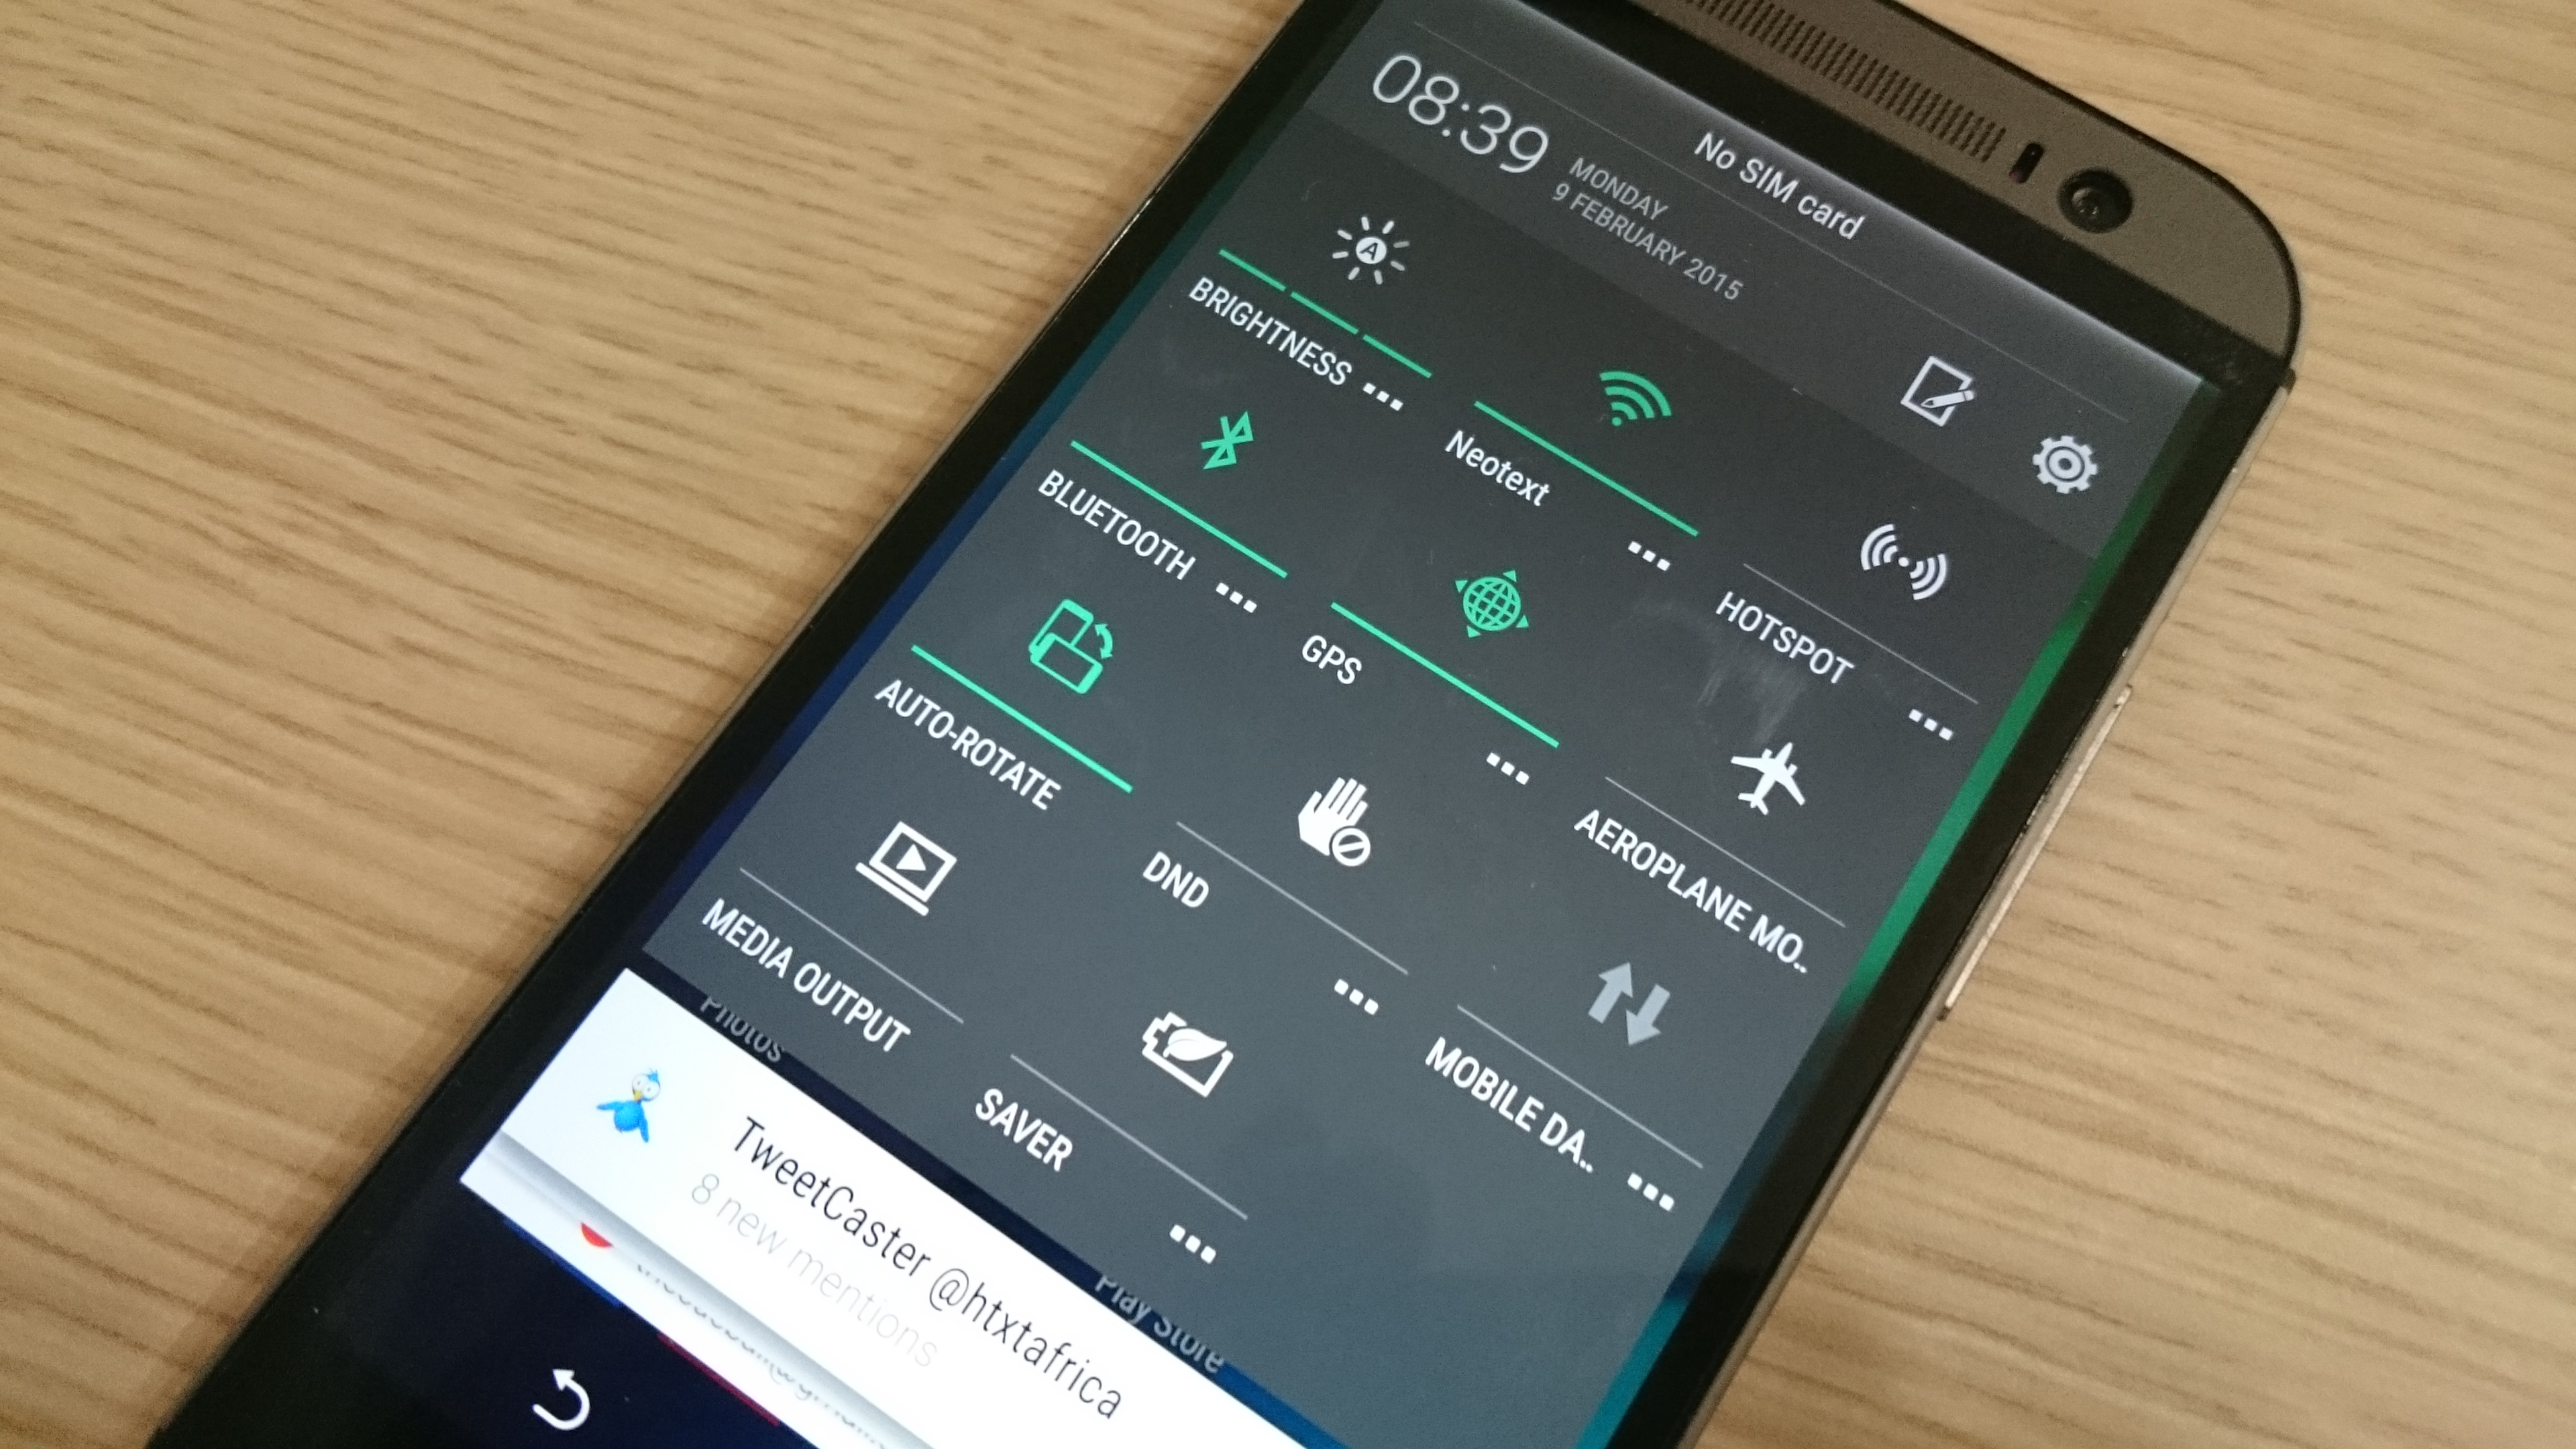 Quick settings in Lollipop, functional, customisable.